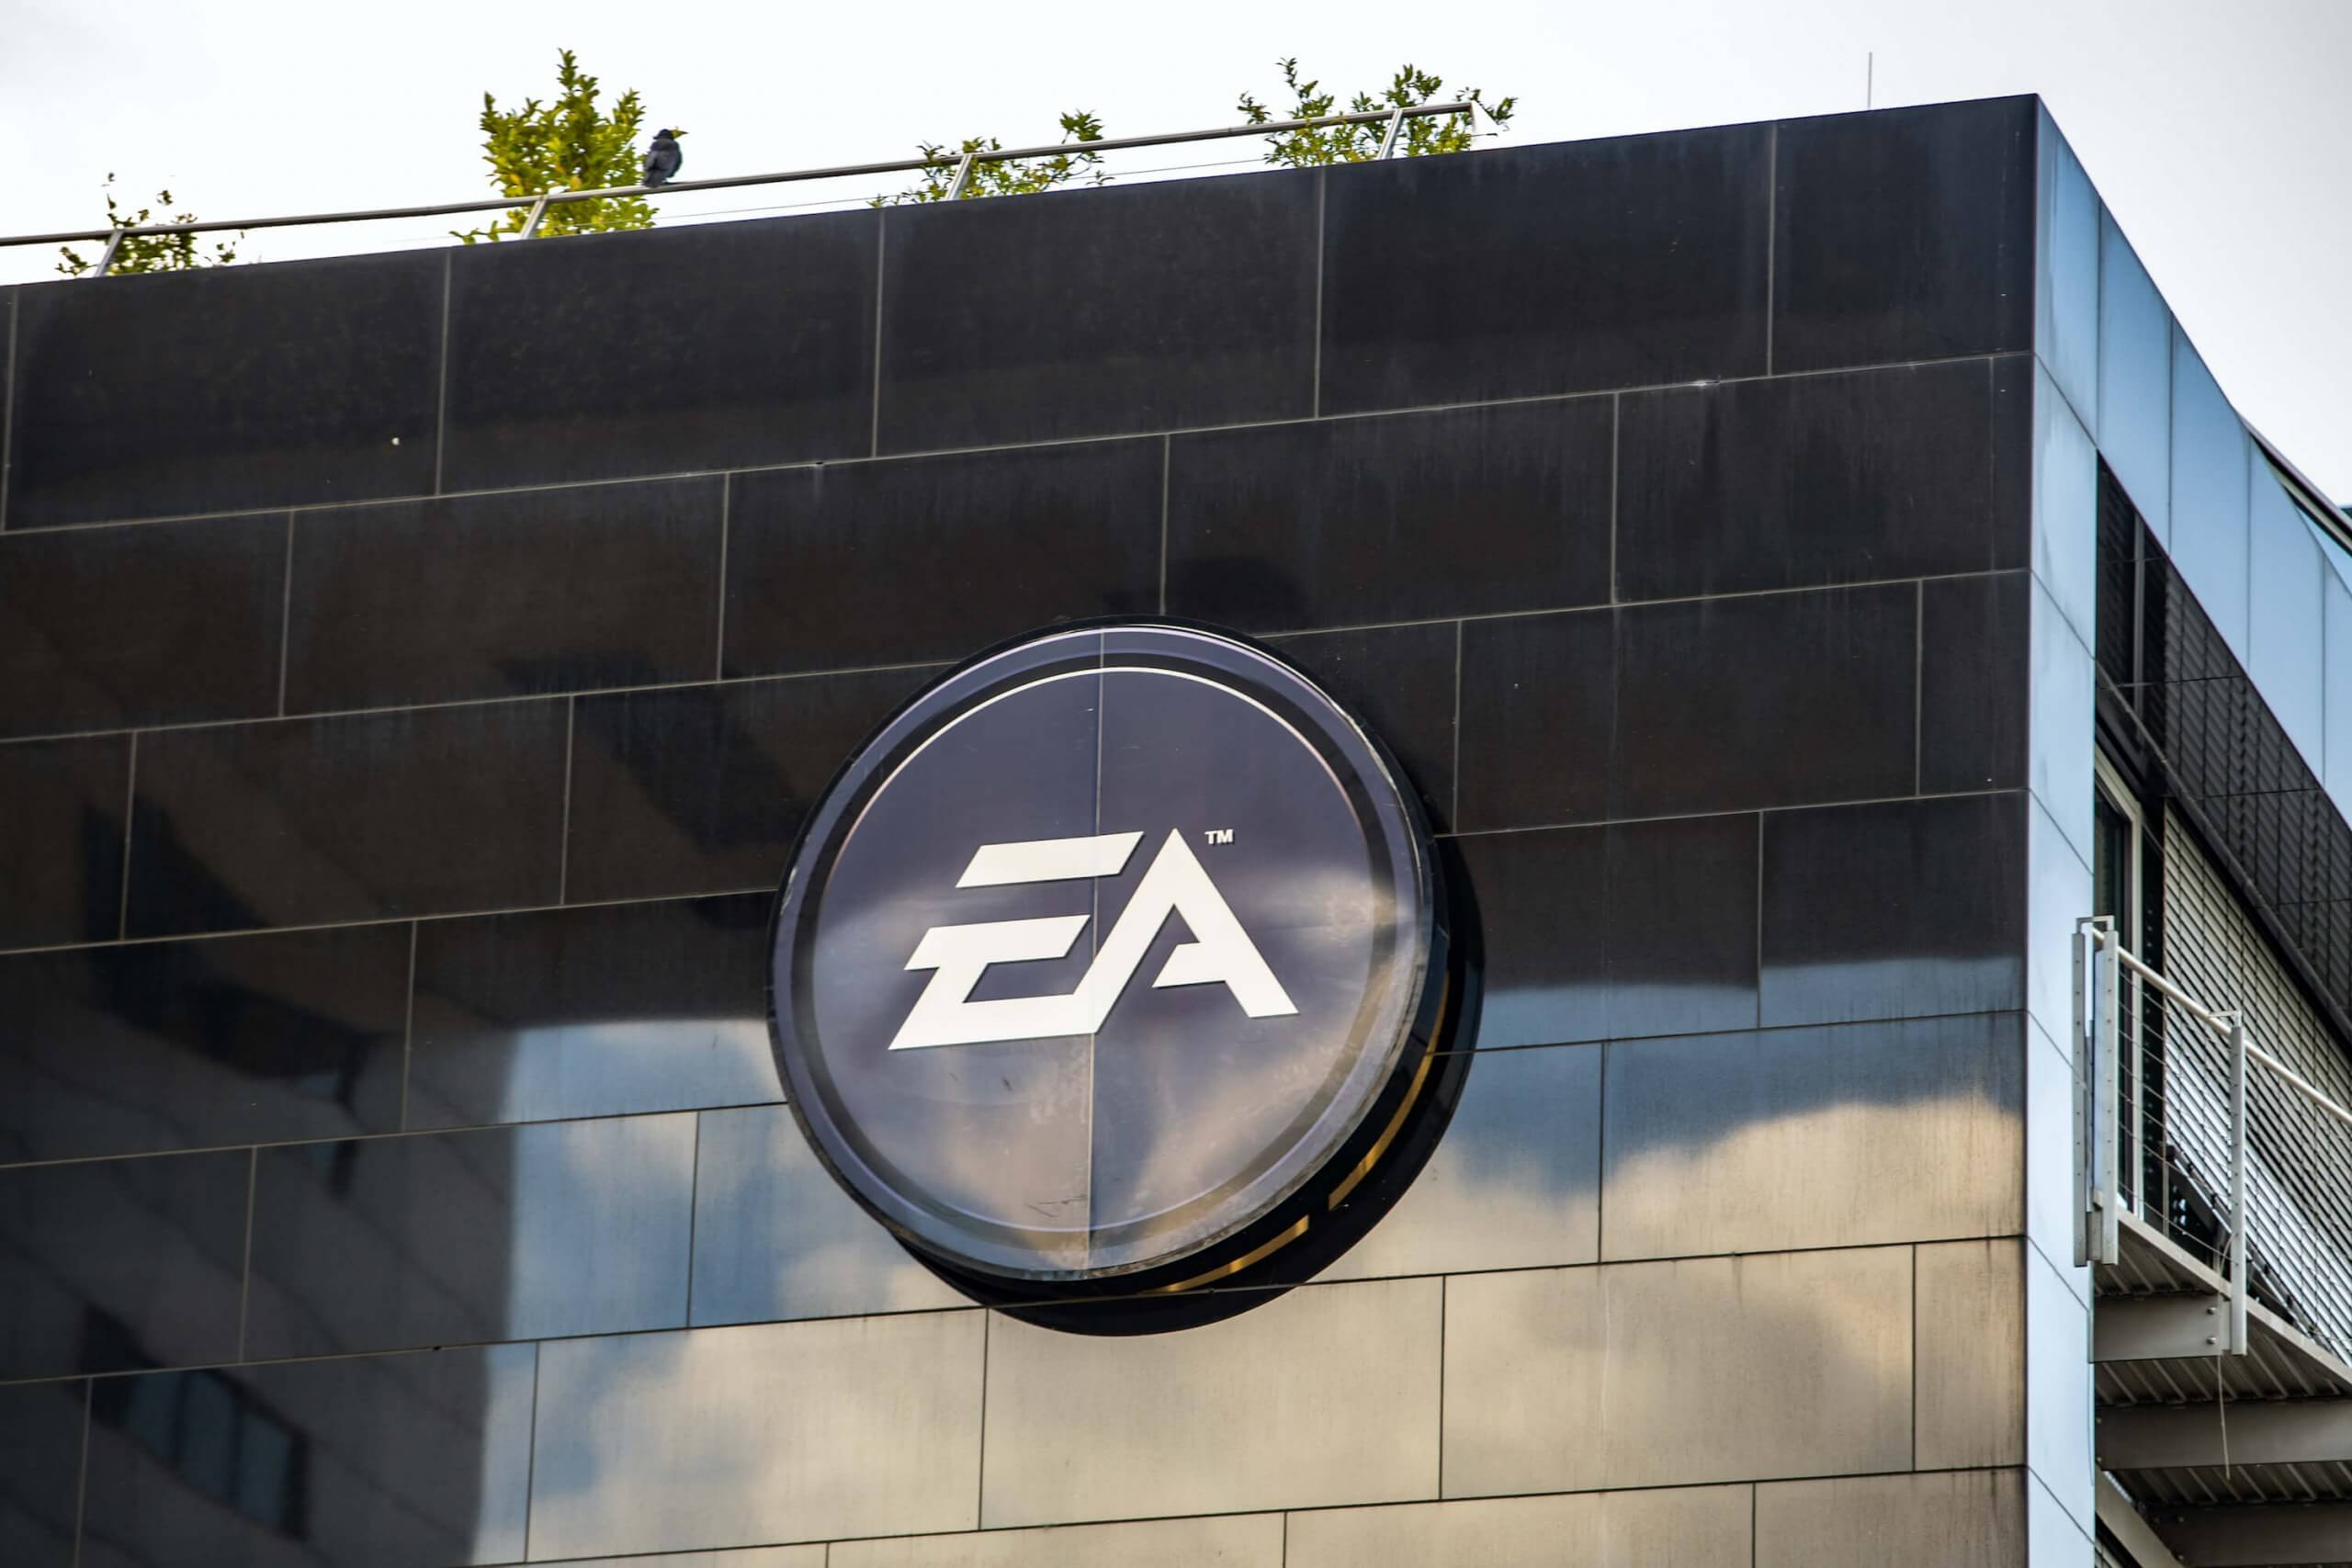 EA confirms rumors of a partnership with Valve to bring games back to Steam